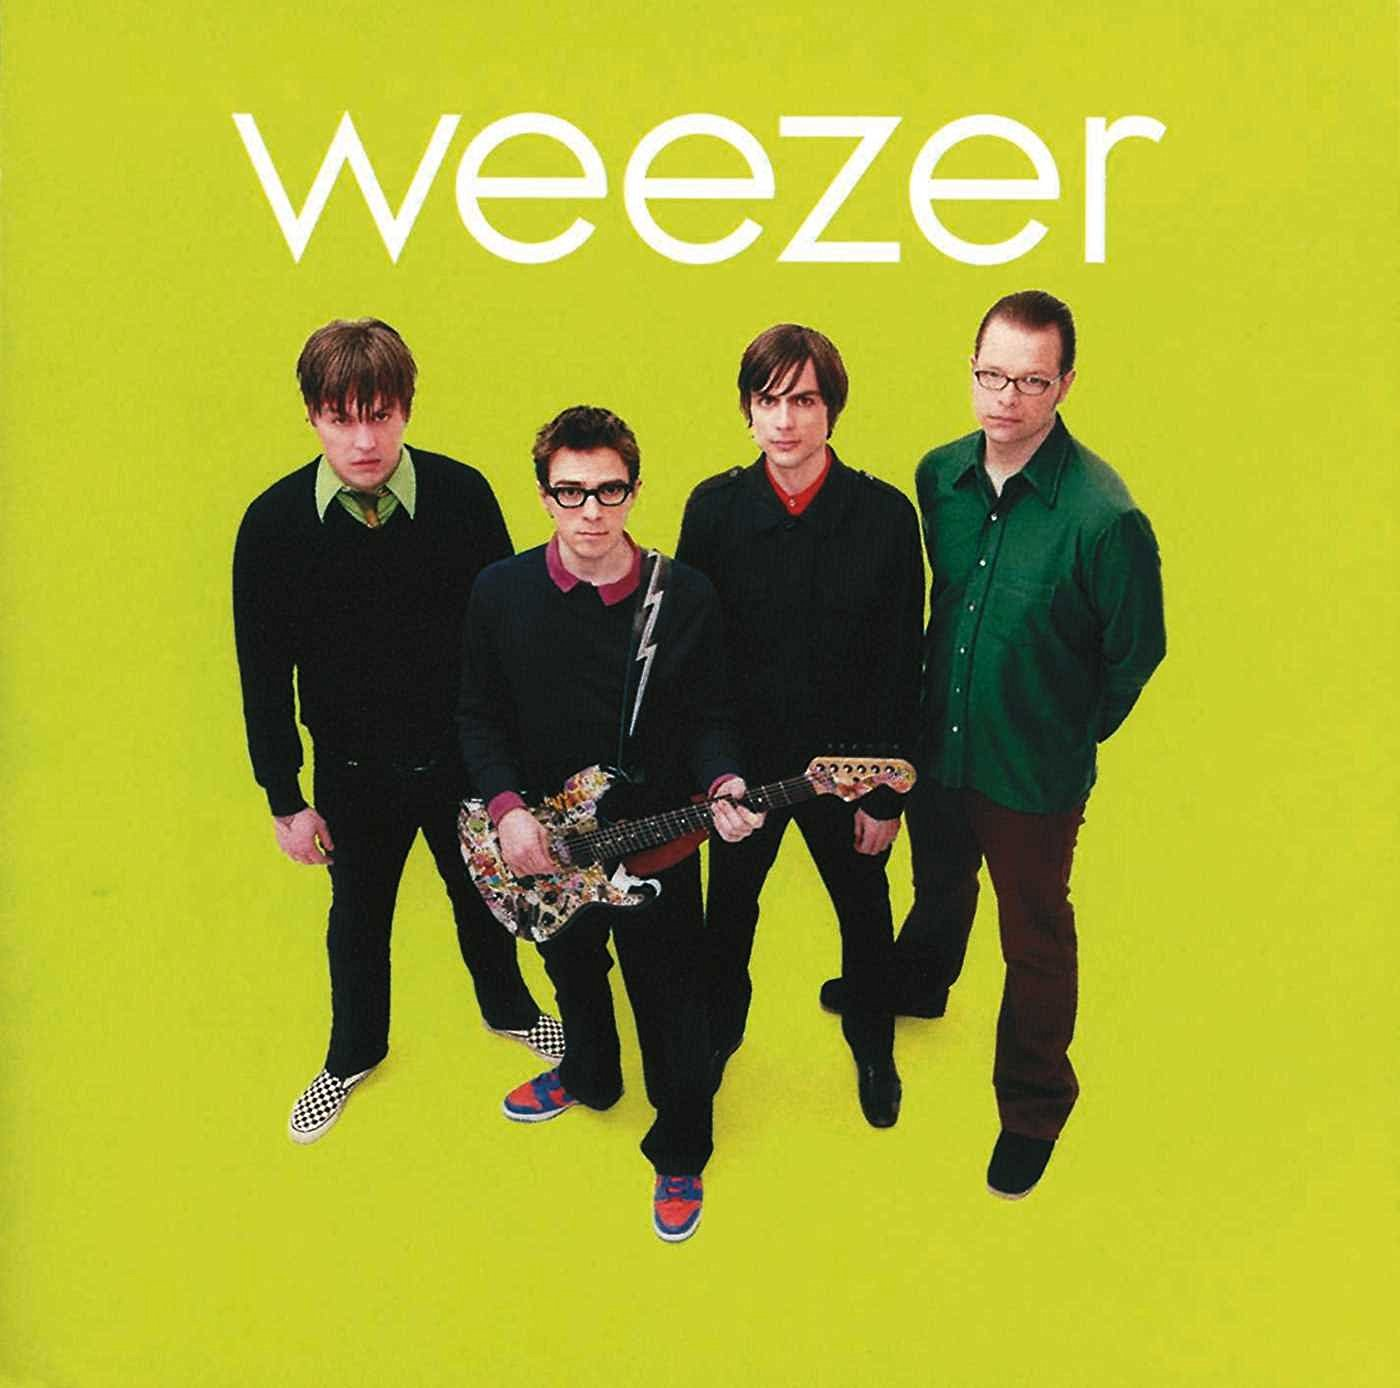 Weezer - Weezer: The Green Album [Import Limited Edition LP]